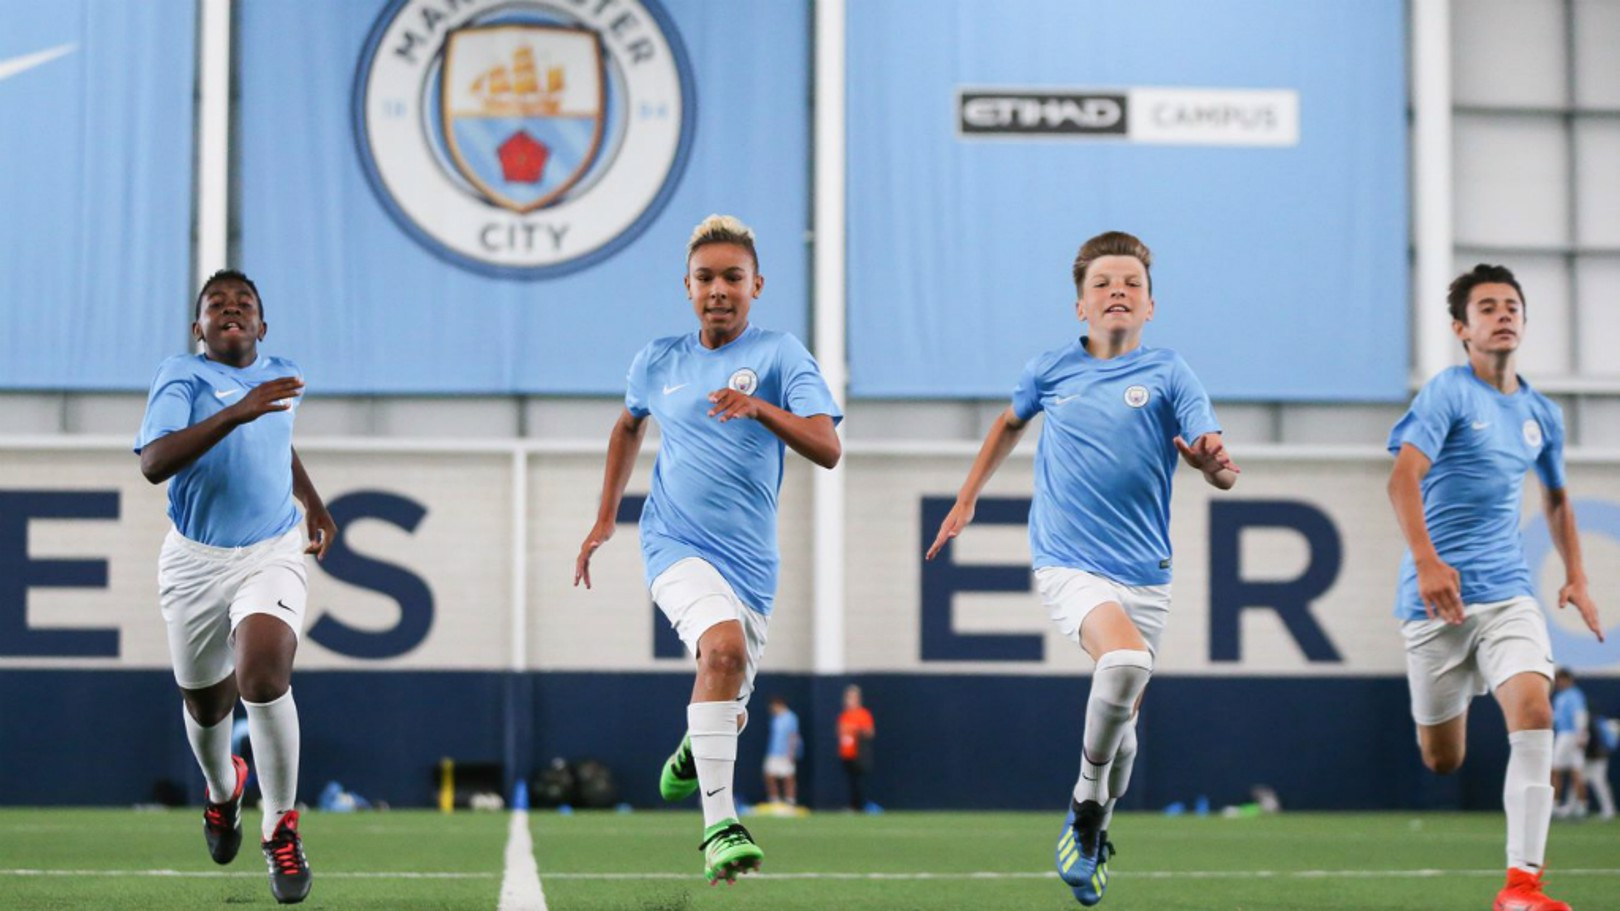 CITY FOOTBALL SCHOOLS: Register now